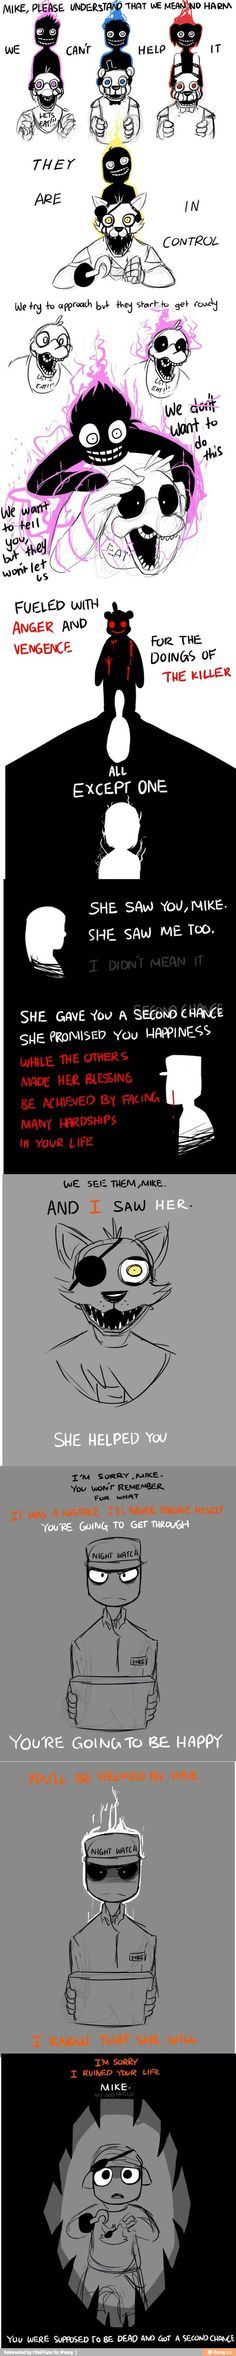 Oh, I don't need the feeling of happiness, nope, thanks Foxy.... But isn't Bonnie the boy and Chica the girl?